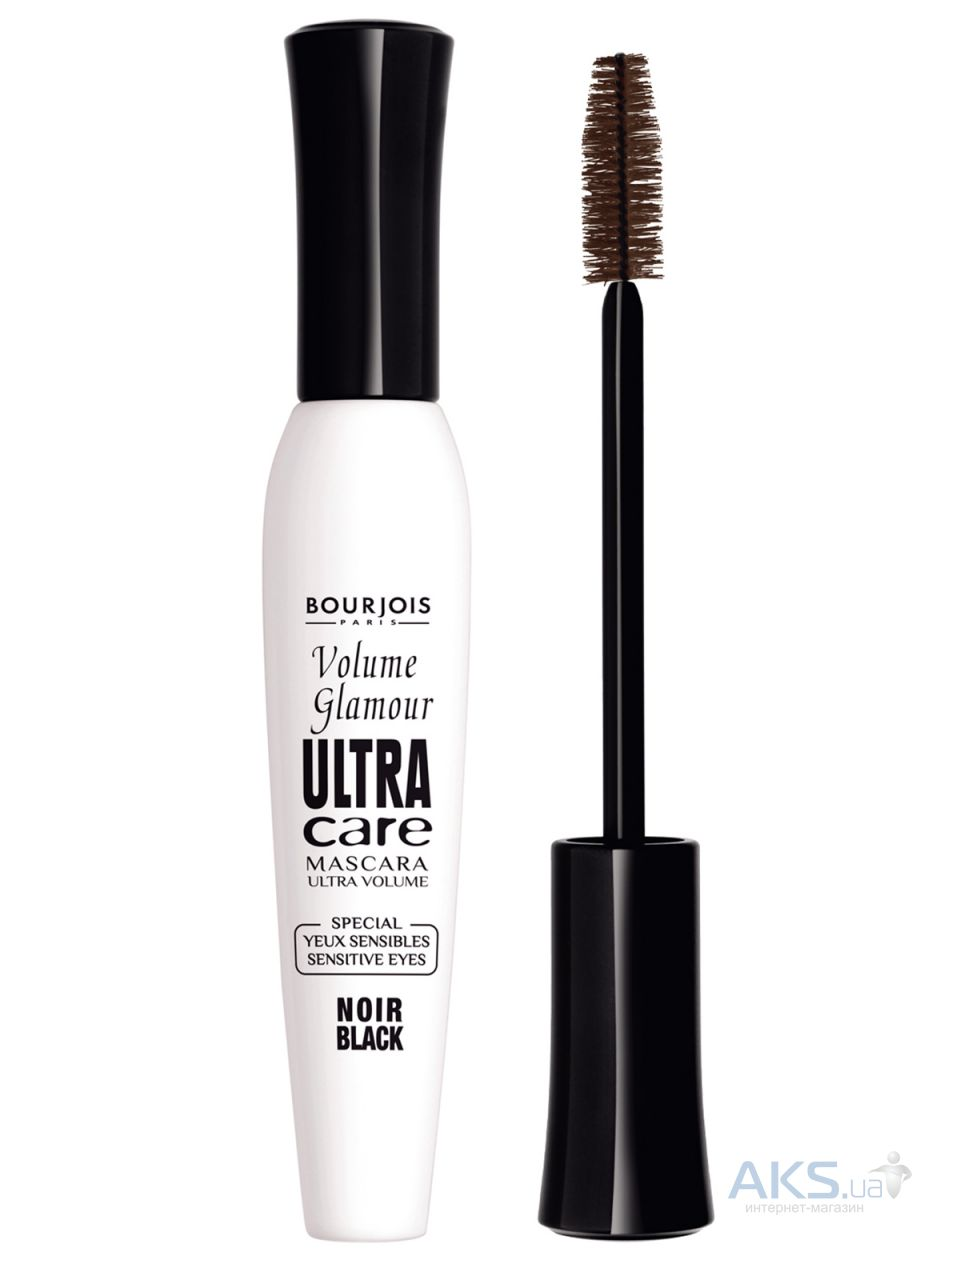 Тушь для ресниц Bourjois Volume Glamour Ultra Care 12 мл